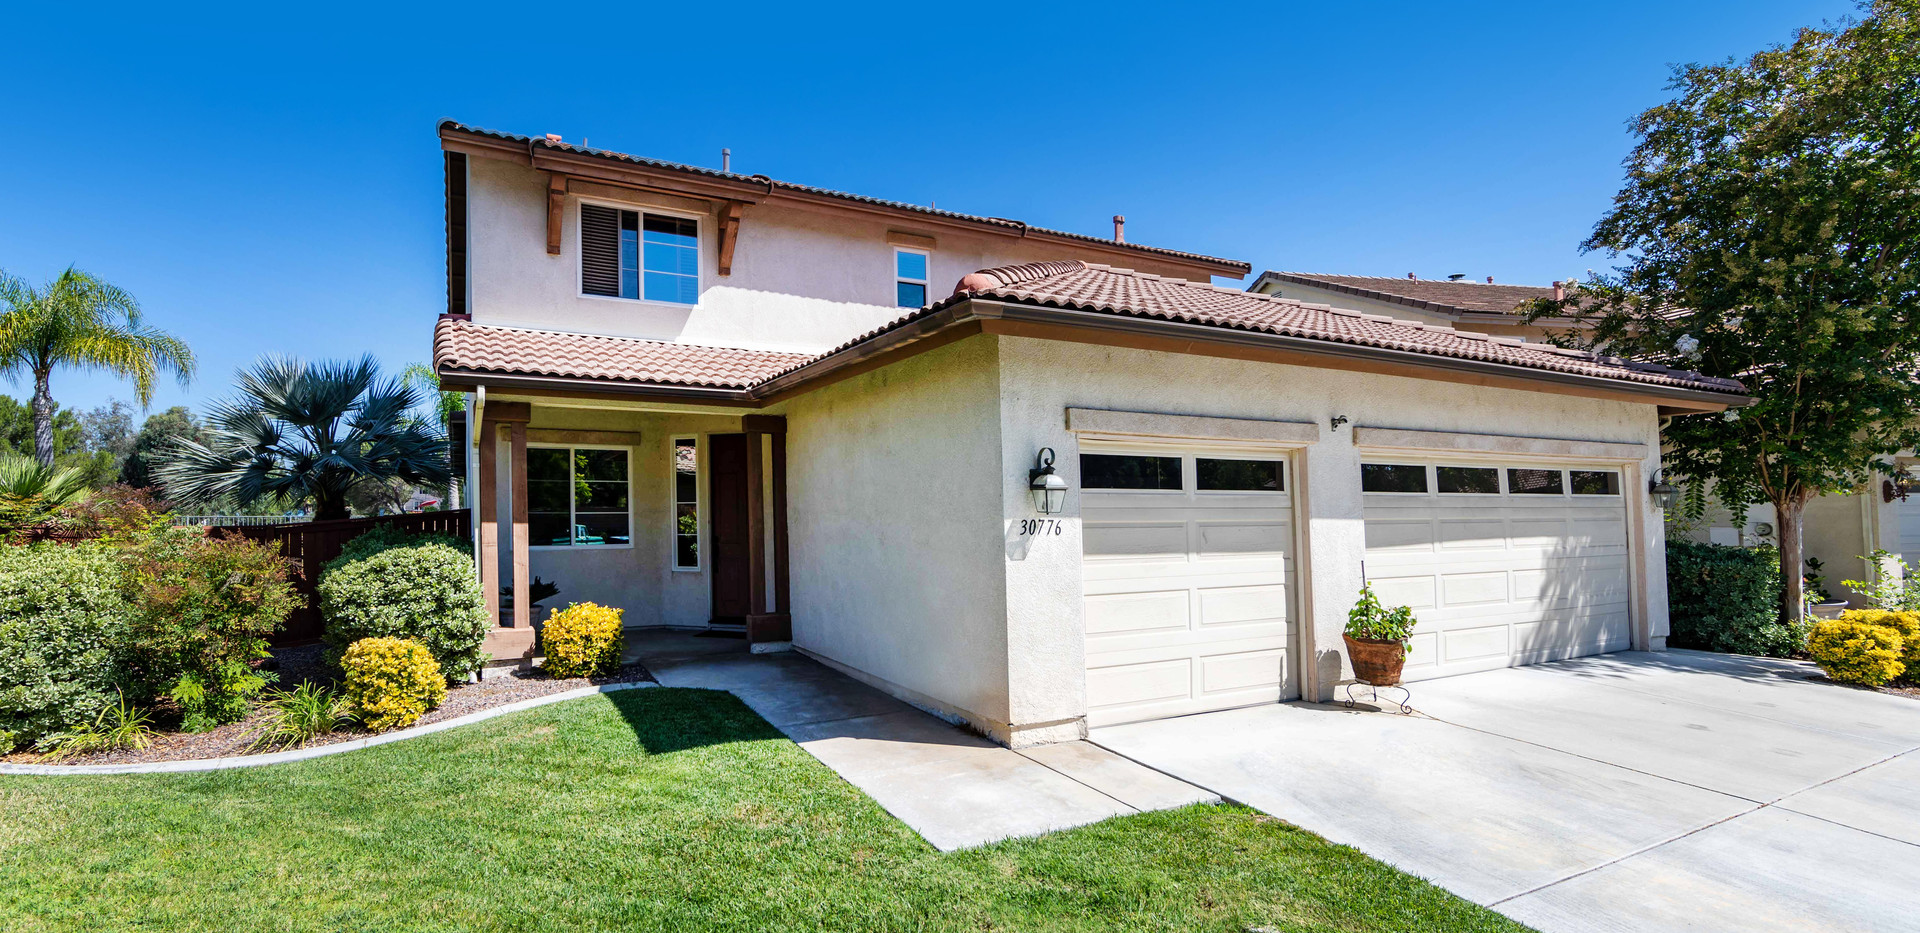 30776 Crystalaire Dr-ext-2.jpg